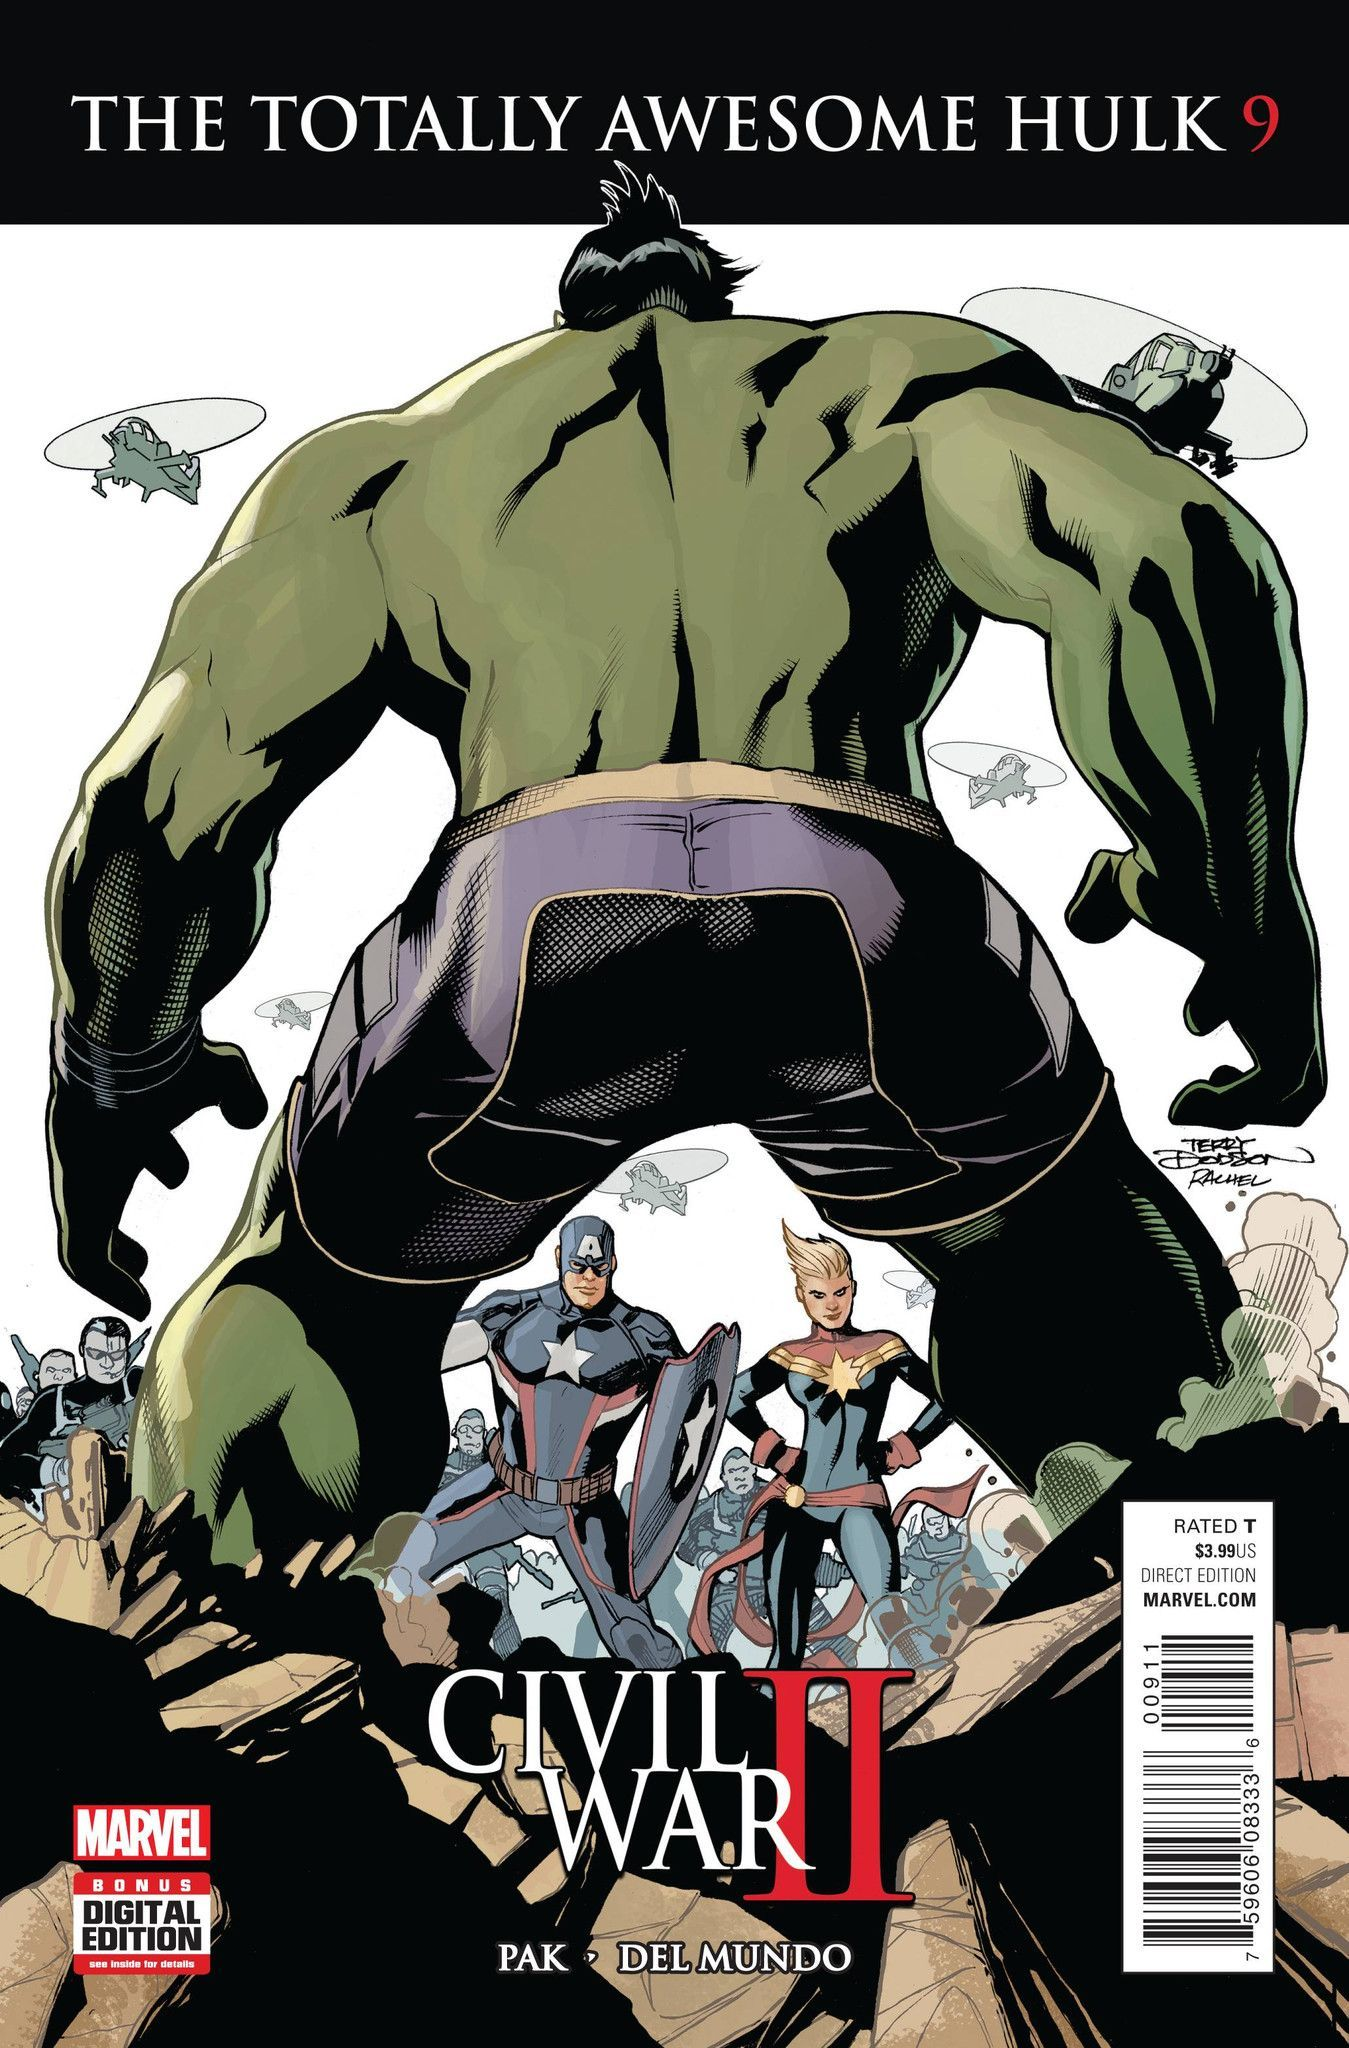 MARVEL COMICS (W) Greg Pak (A) Mike Del Mundo (CA) Terry Dodson CIVIL WAR II TIE-IN! • AMADEUS CHO has lost someone very close to him. Now he's mad. VERY MAD. No one would like him when he's very mad.